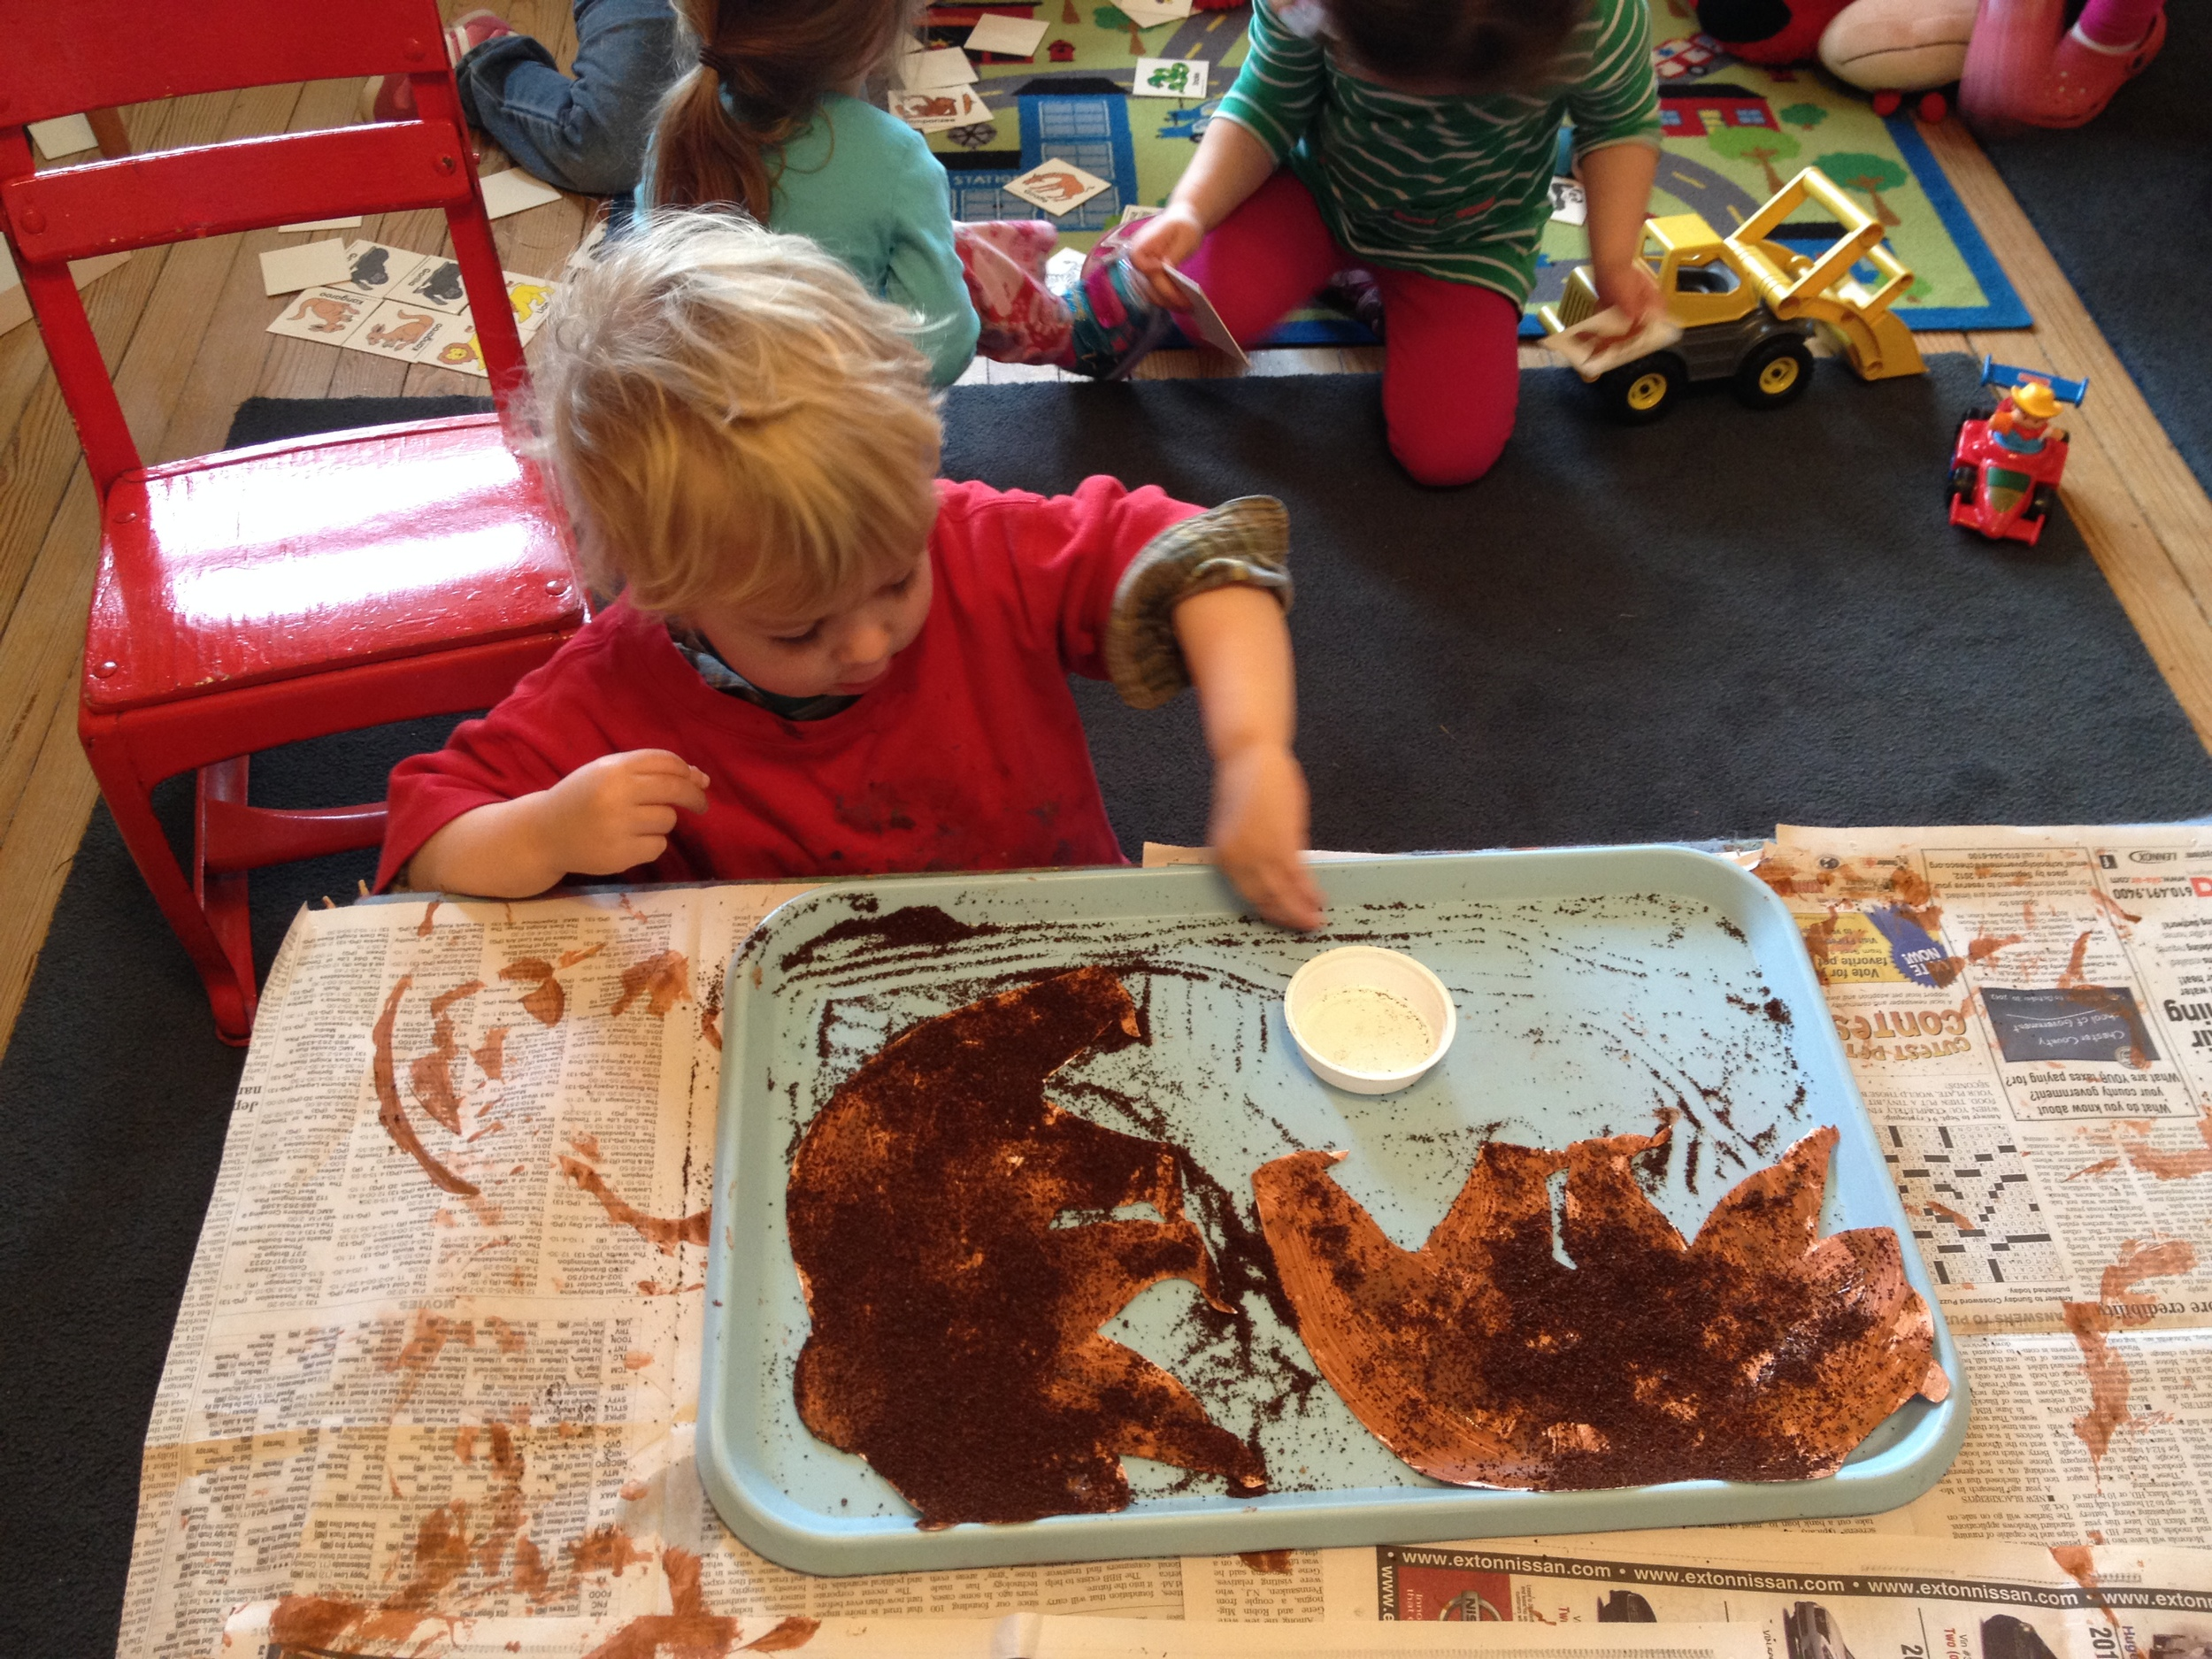 Pinching and spreading coffee to make a bear- good fine motor skill development!